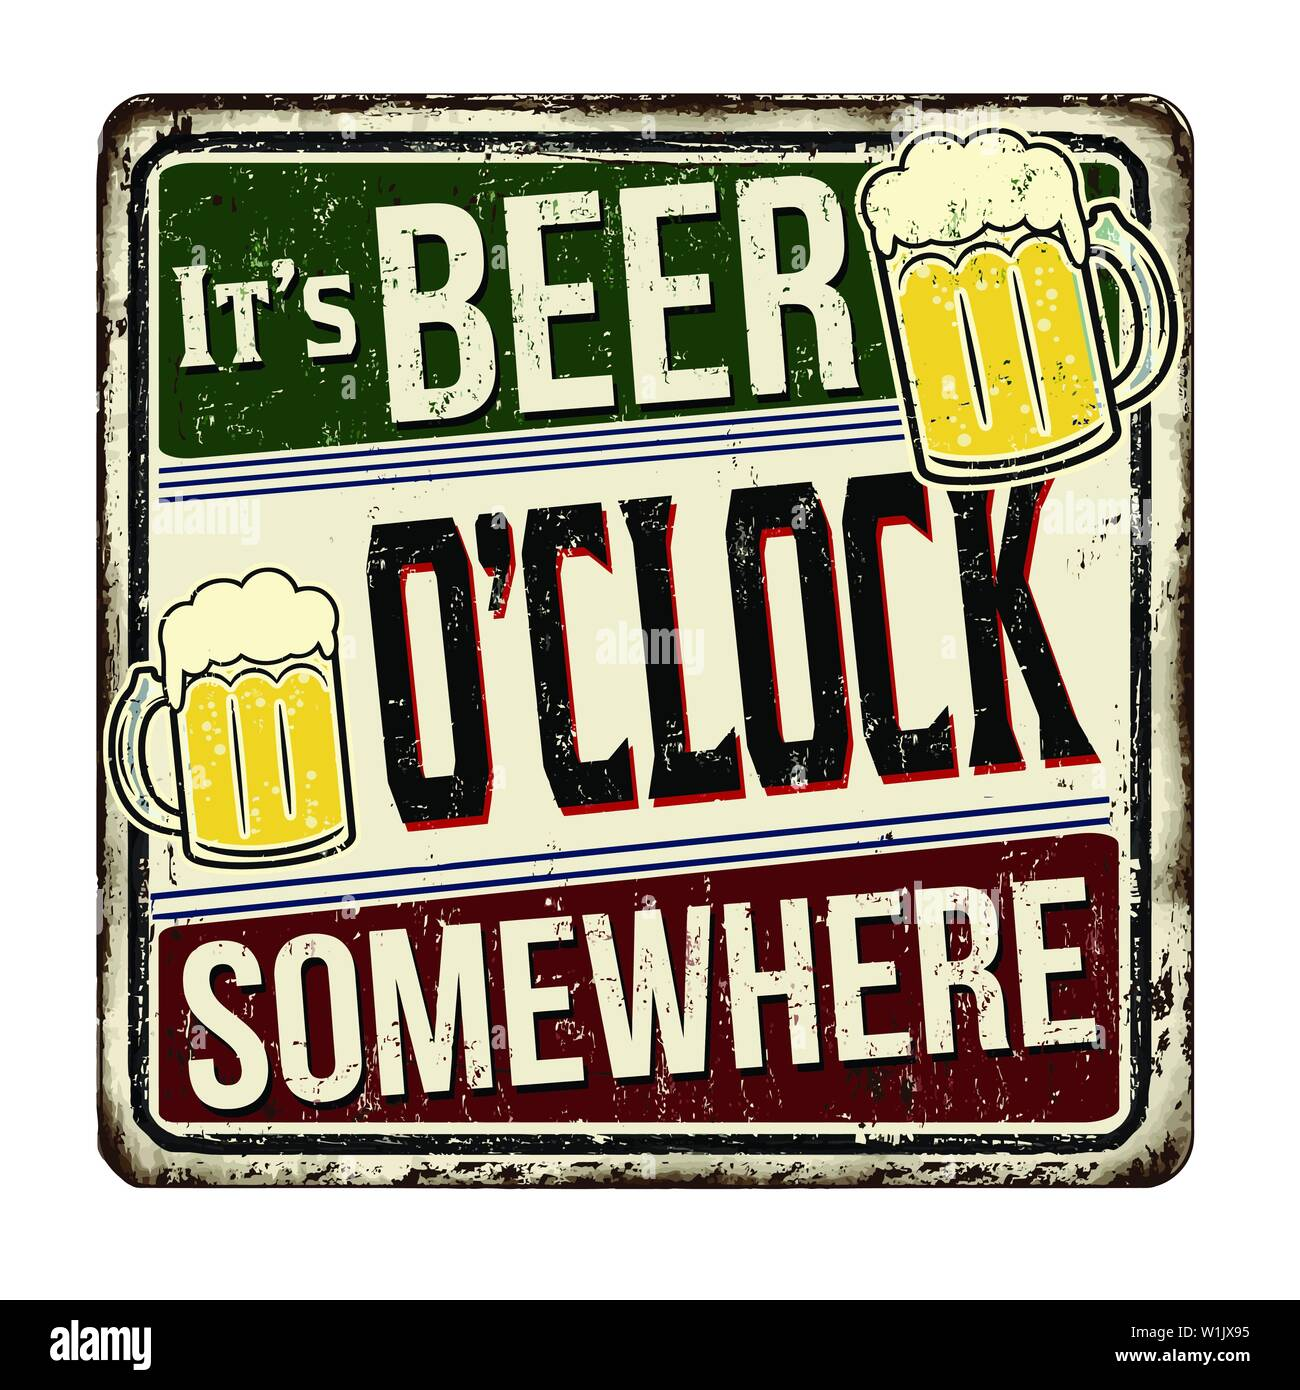 It's beer o'clock somewhere vintage rusty metal sign on a white background, vector illustration - Stock Image